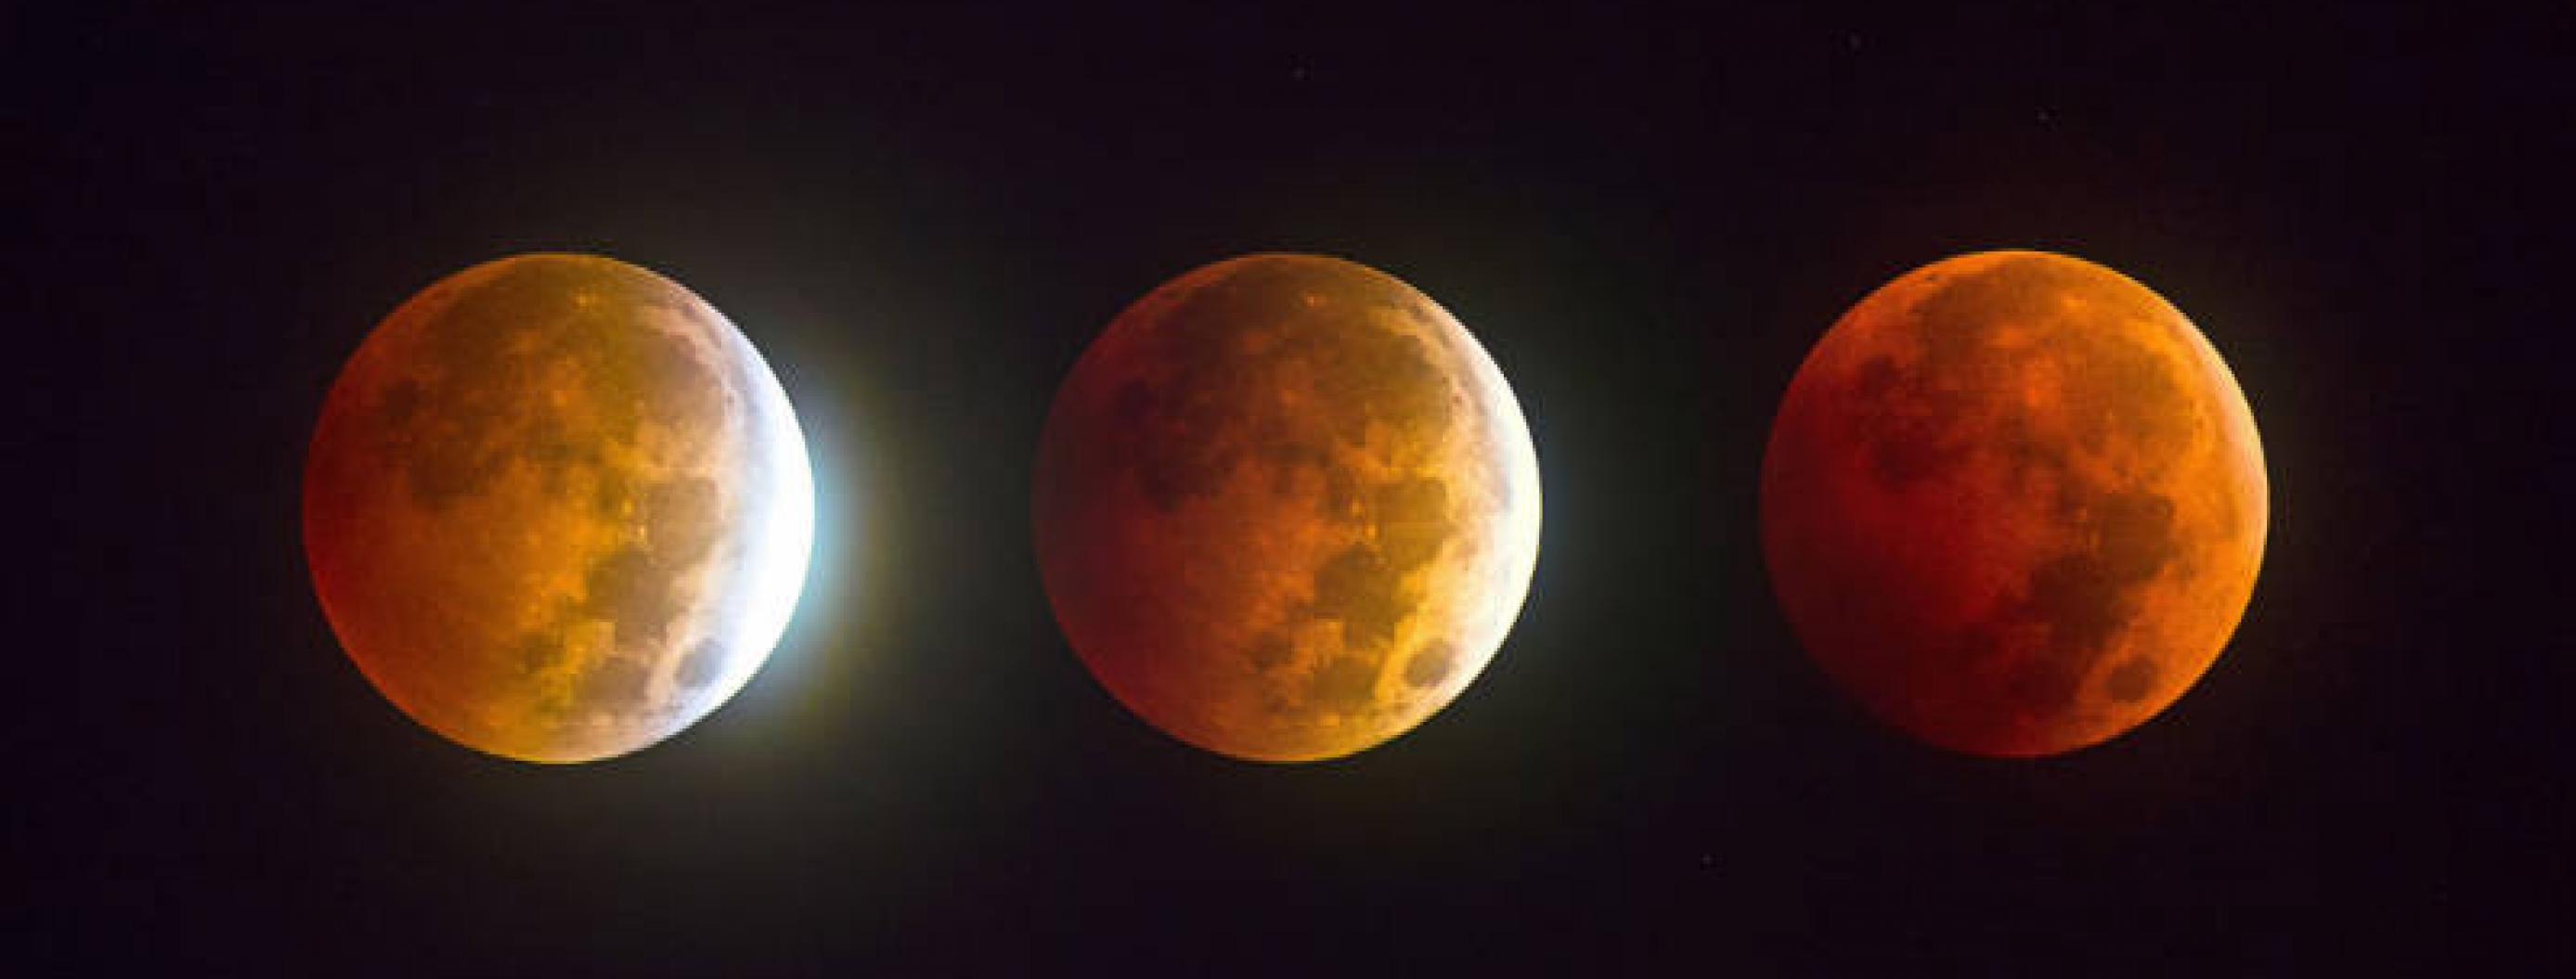 Watch The Skies: 3 Rare Moon Events Will Happen At Once